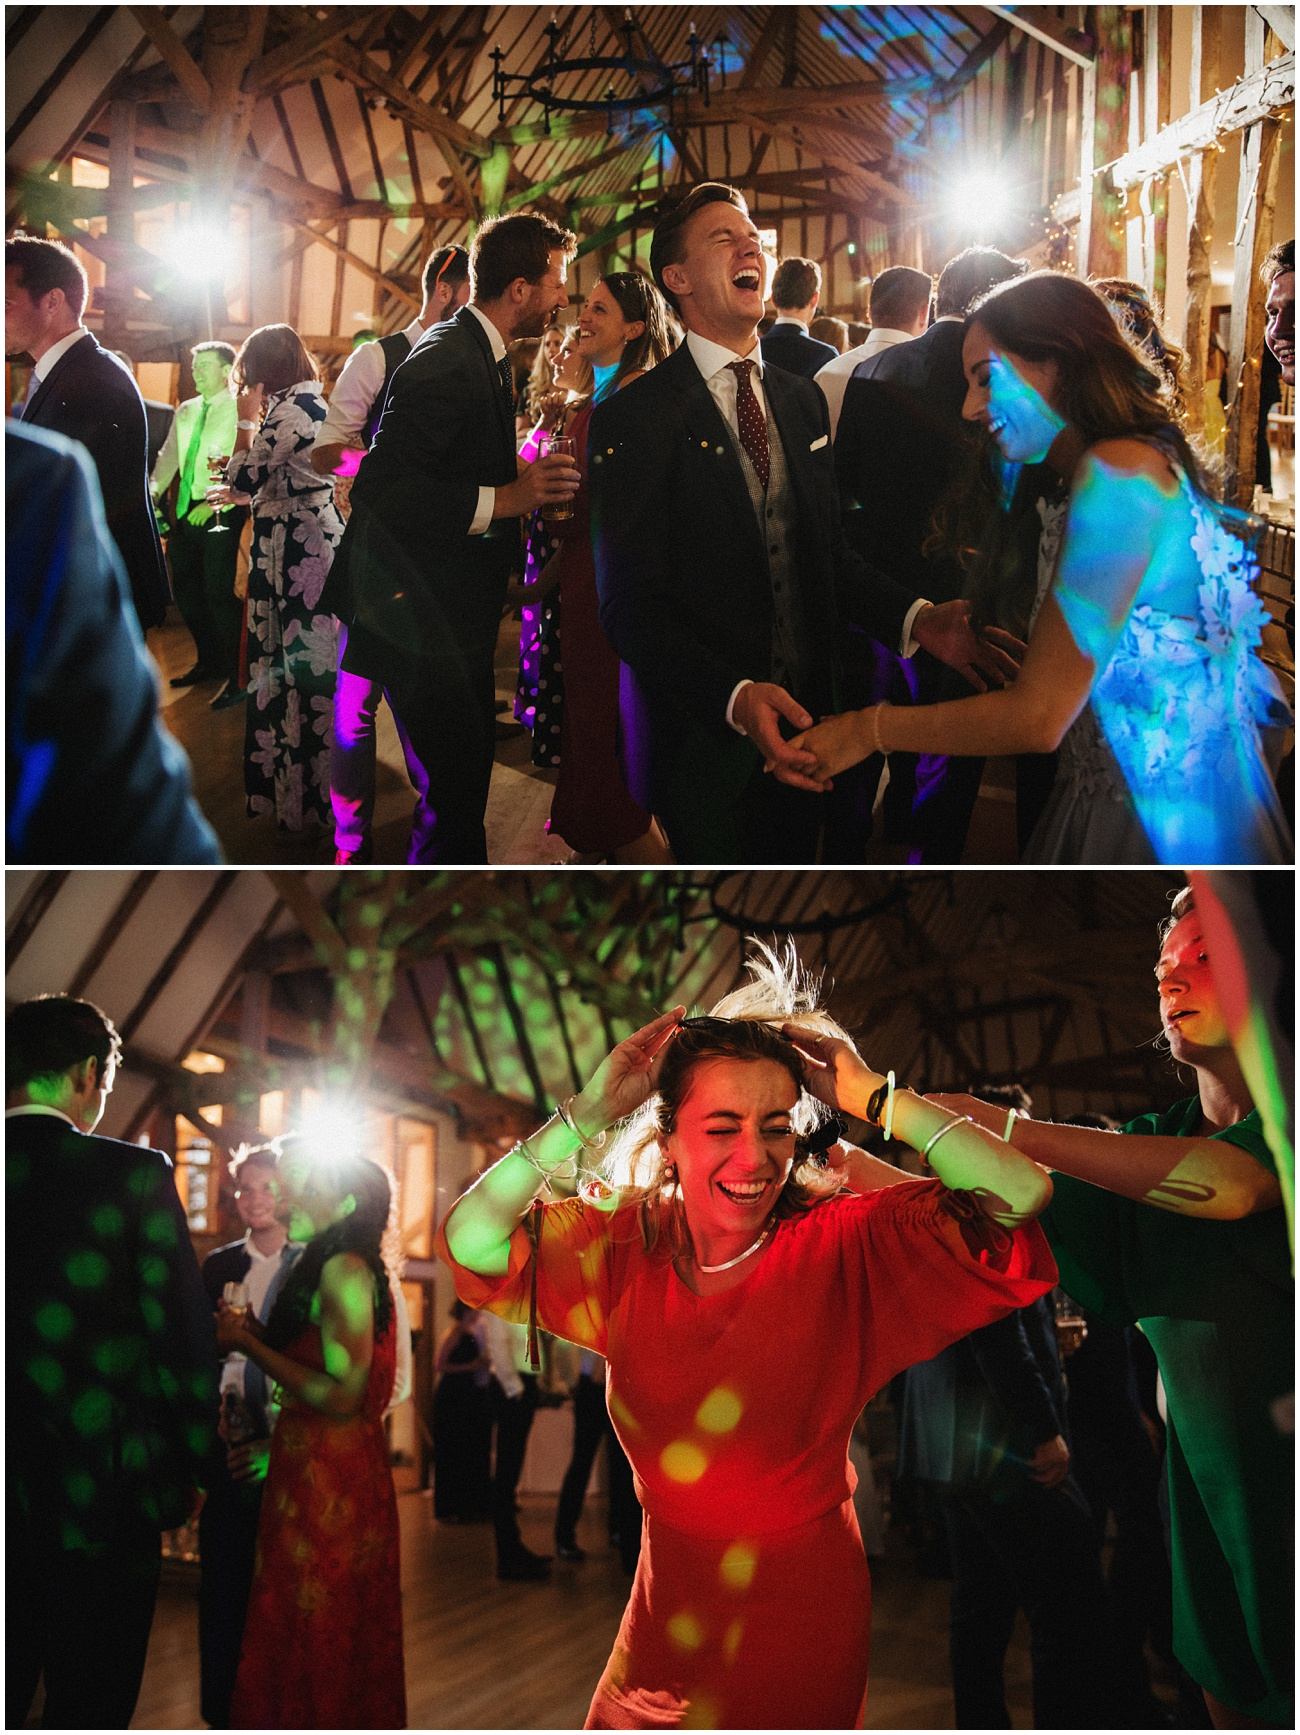 Guests have fun on the dance floor